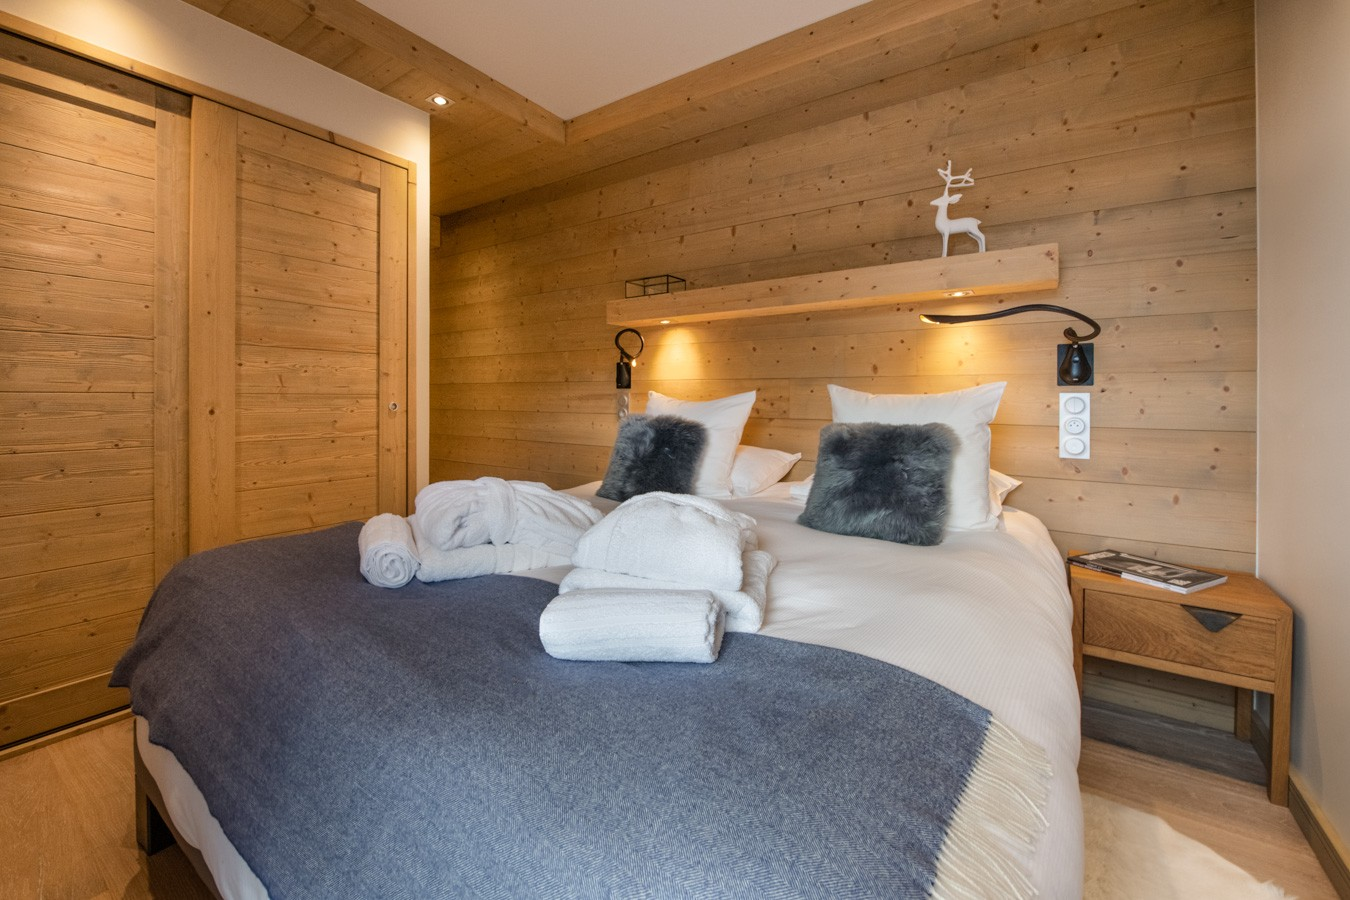 Courchevel 1650 Location Appartement Luxe Amethyste Chambre 4